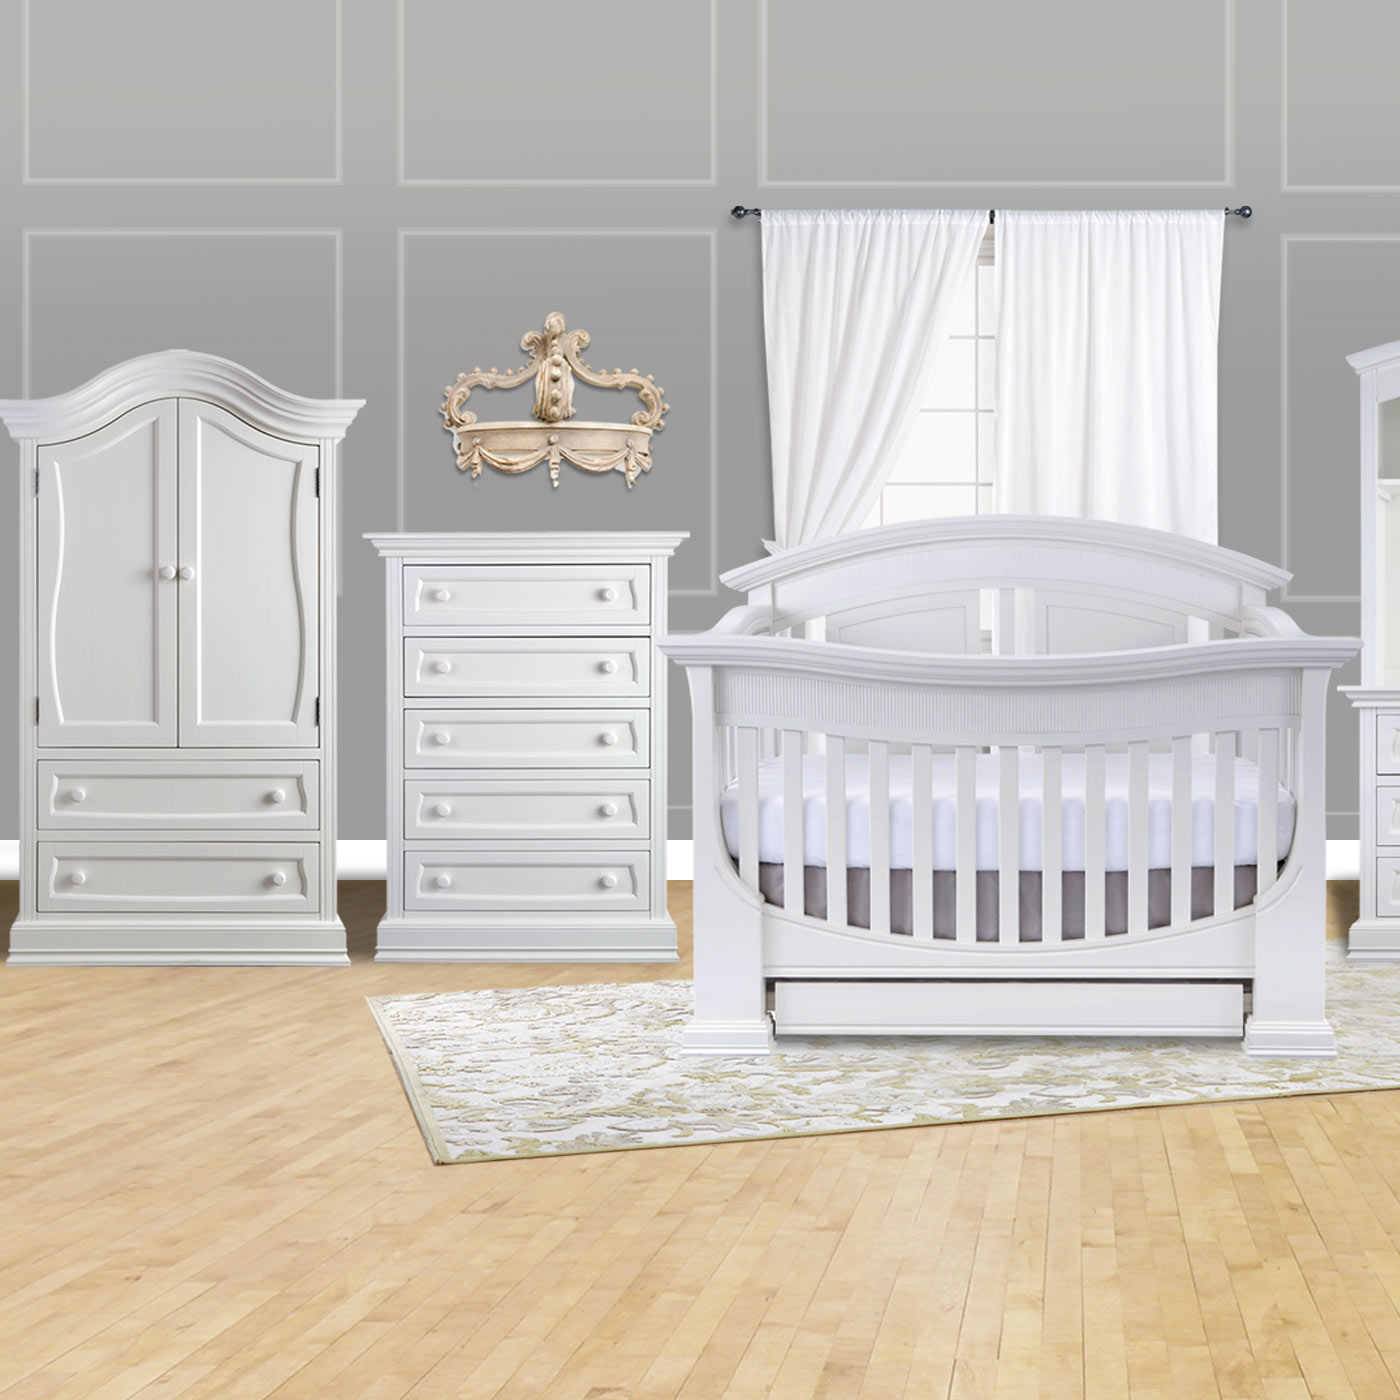 Best crib for tall baby - Cot Sheets Target Images Guru